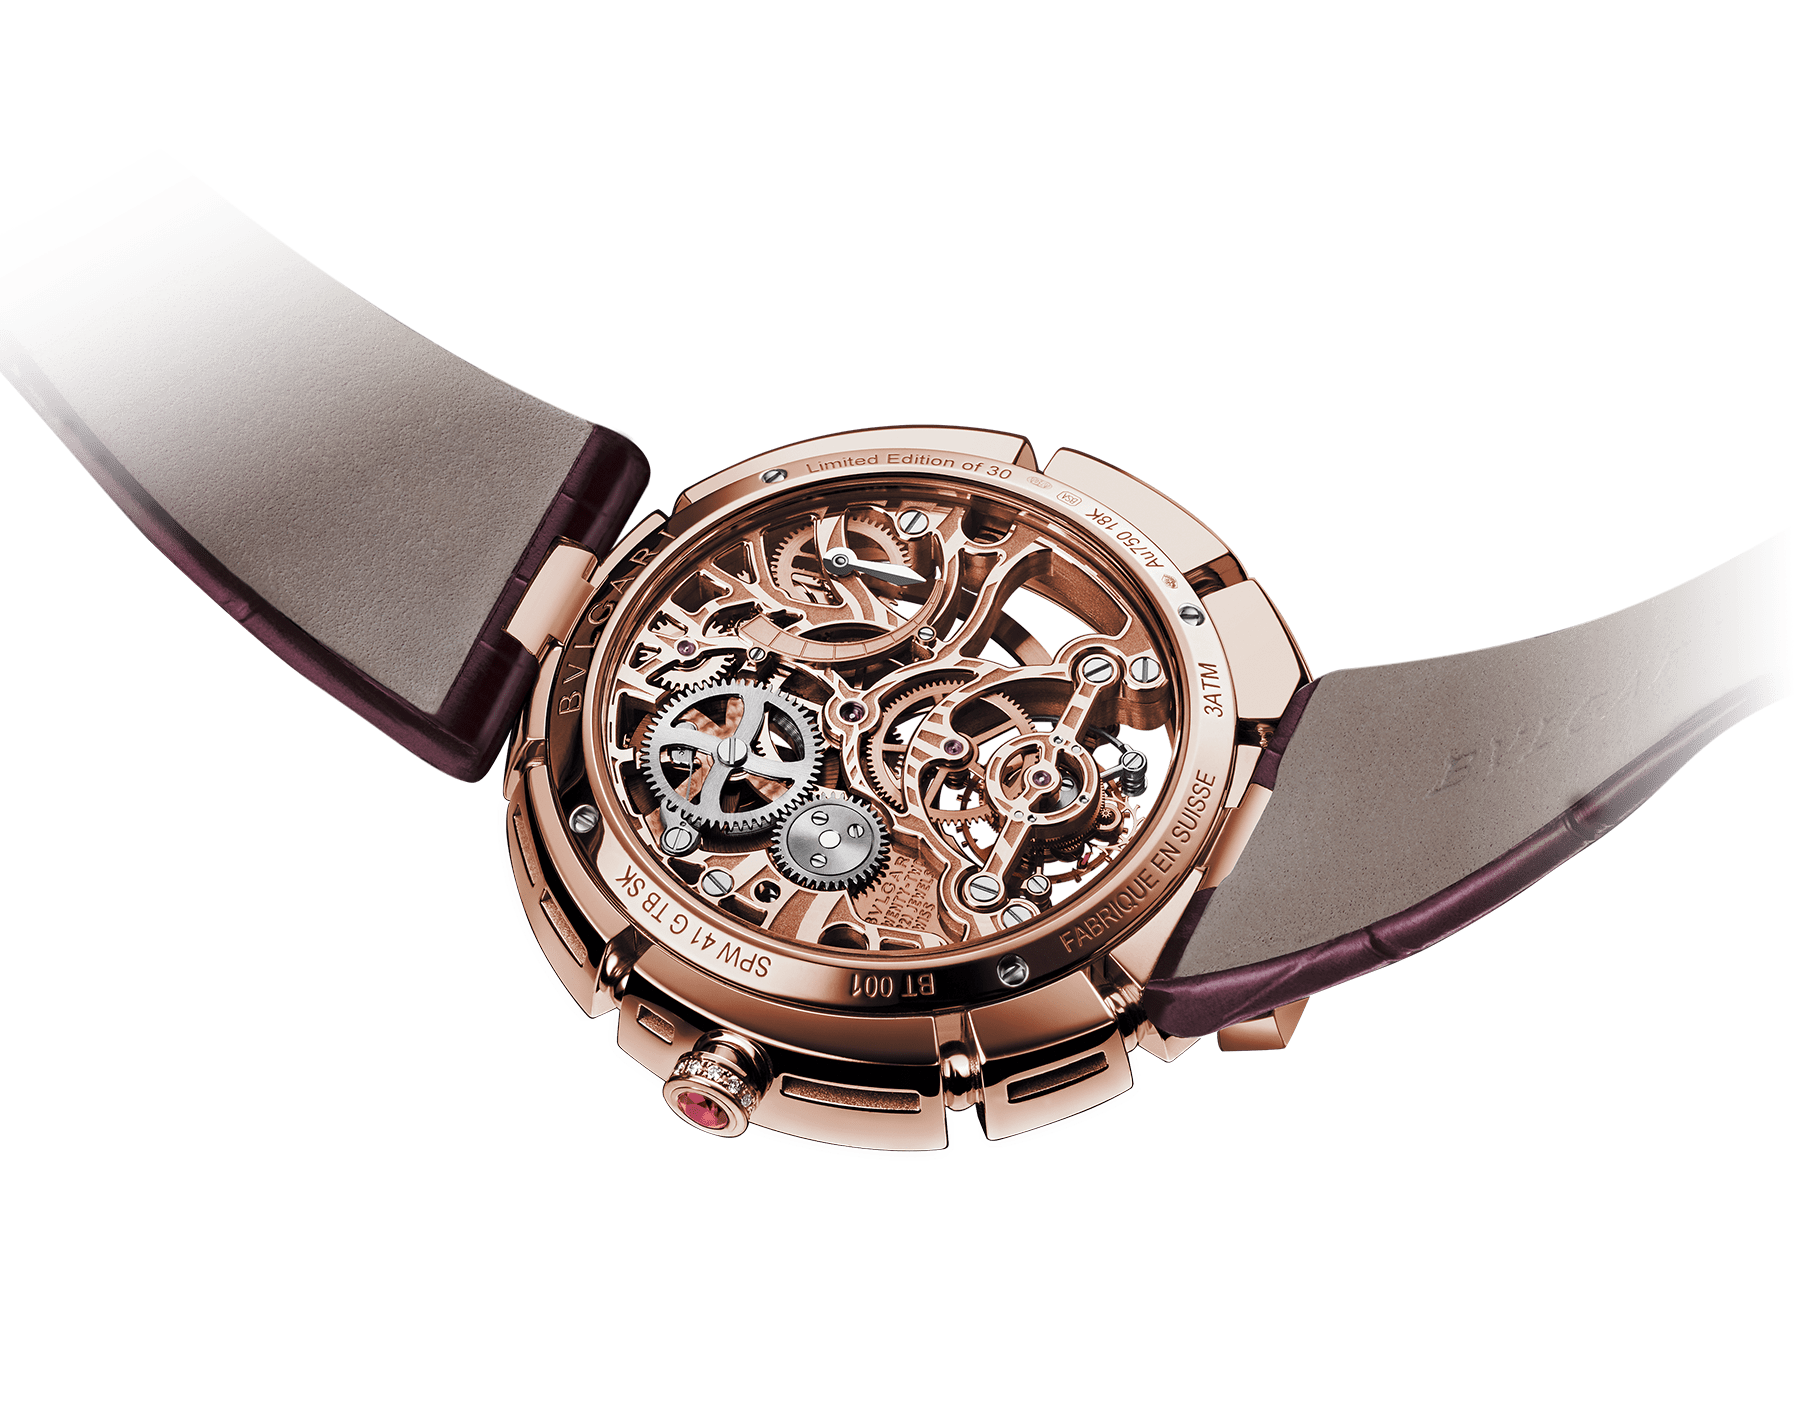 Serpenti Incantati Limited Edition watch with mechanical manufacture skeletonized movement, tourbillon and manual winding. 18 kt rose gold case set with brilliant cut diamonds, transparent dial and burgundy alligator bracelet. 102540 image 2